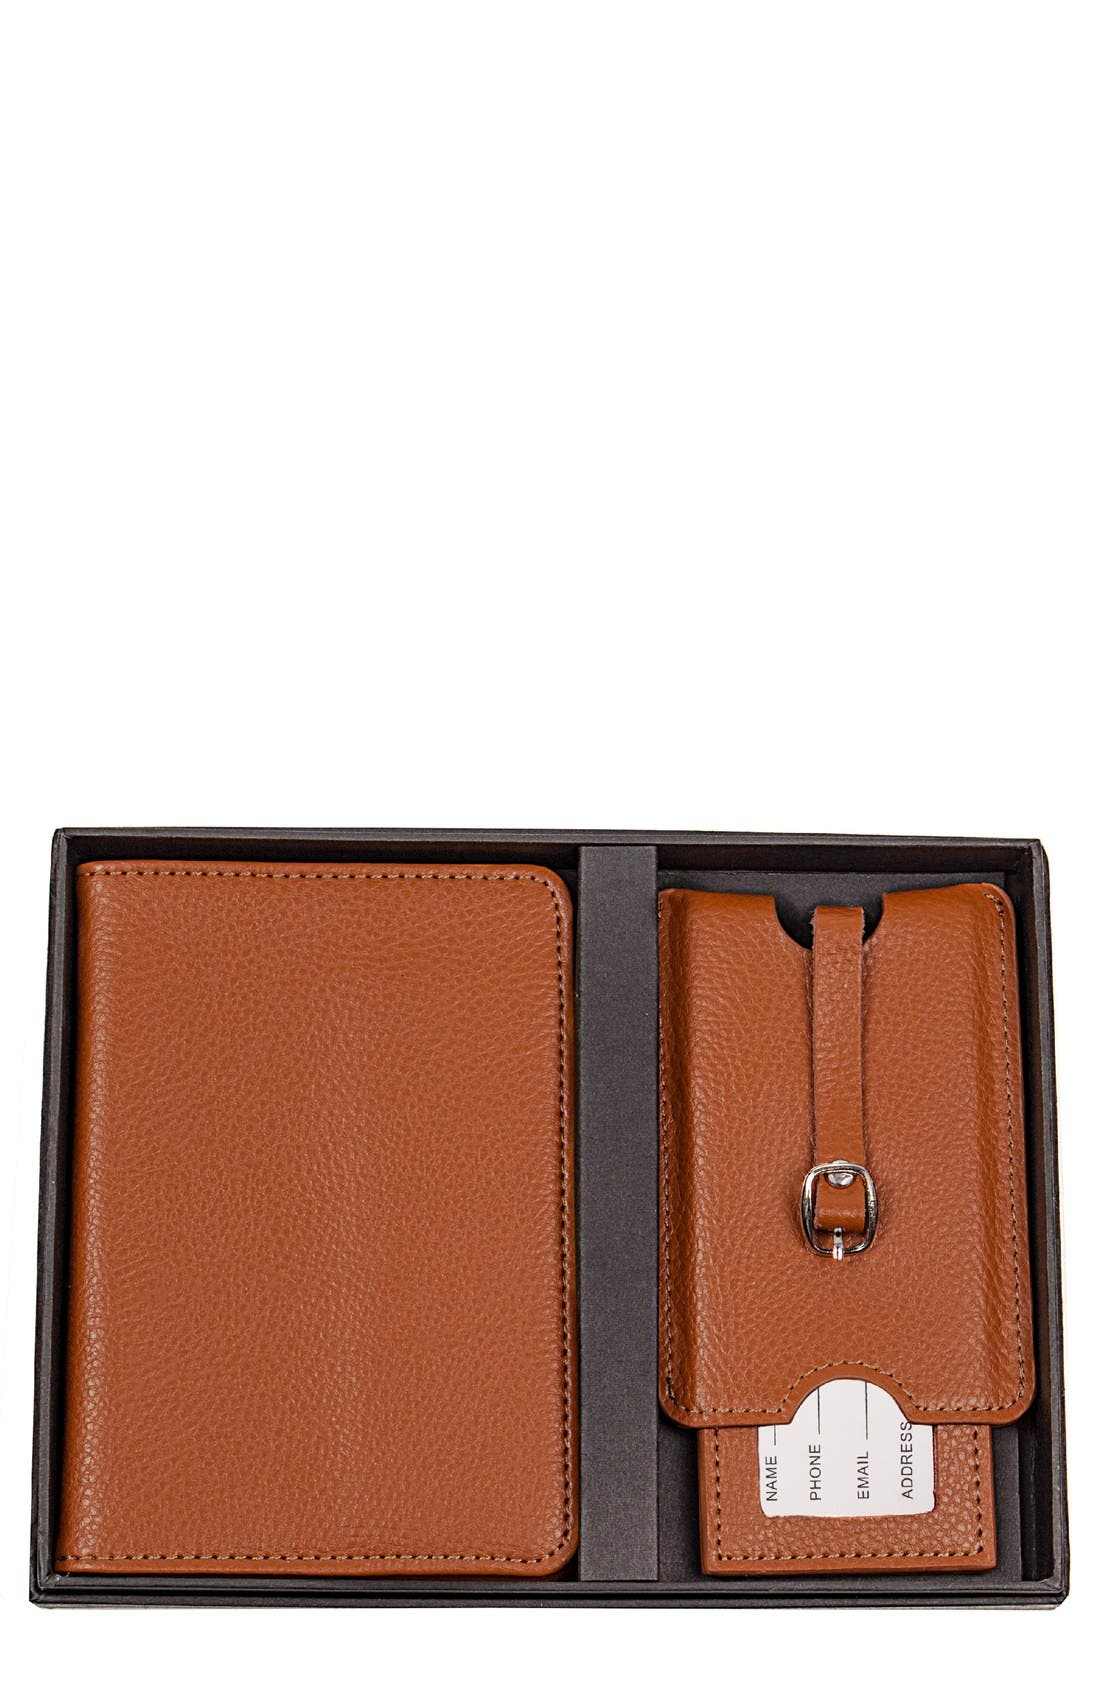 Monogram Passport Case & Luggage Tag,                         Main,                         color, 200